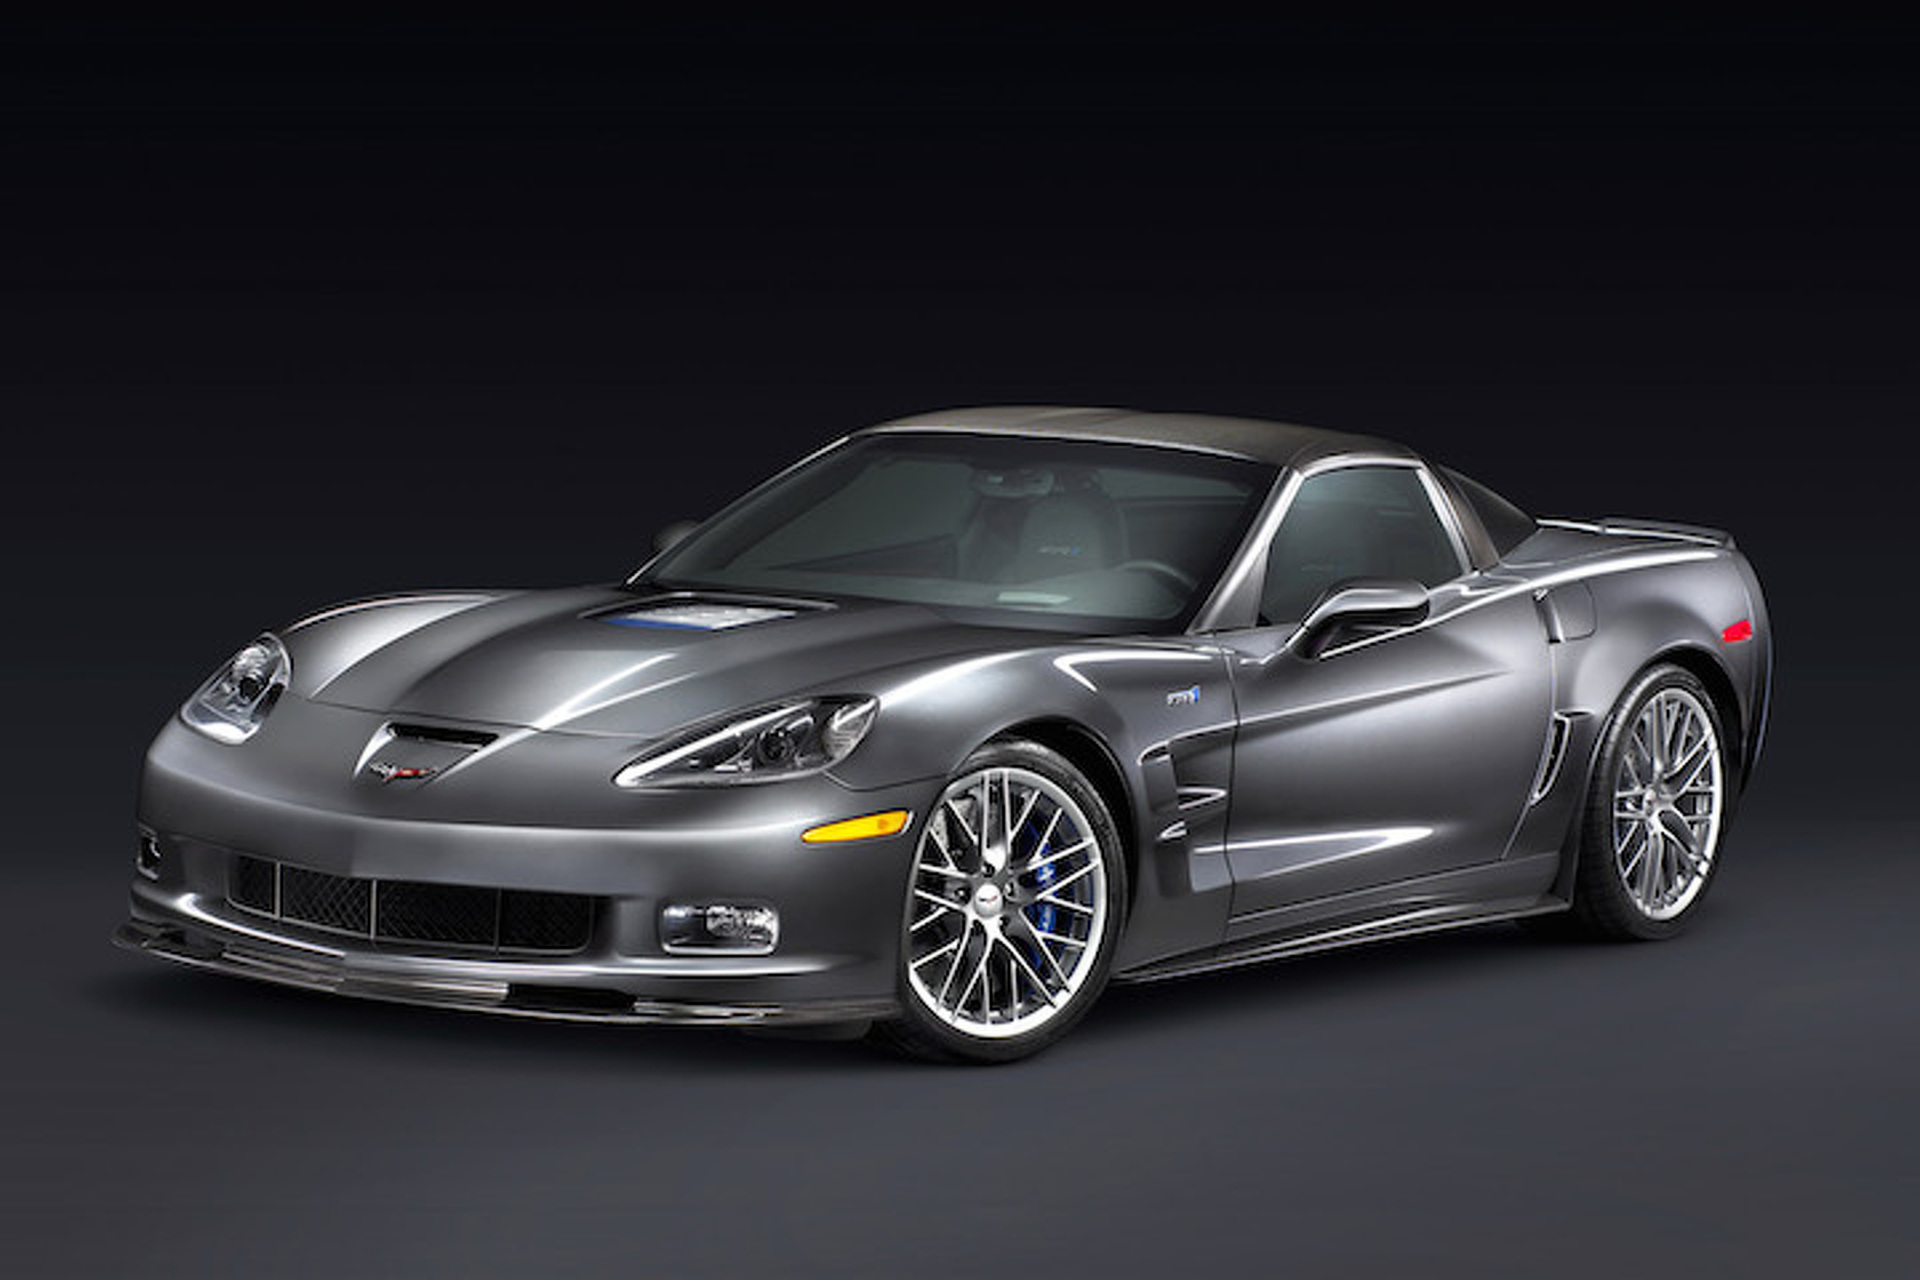 Should Chevy Build a Mid-Engined Corvette Hypercar? [w/Poll]